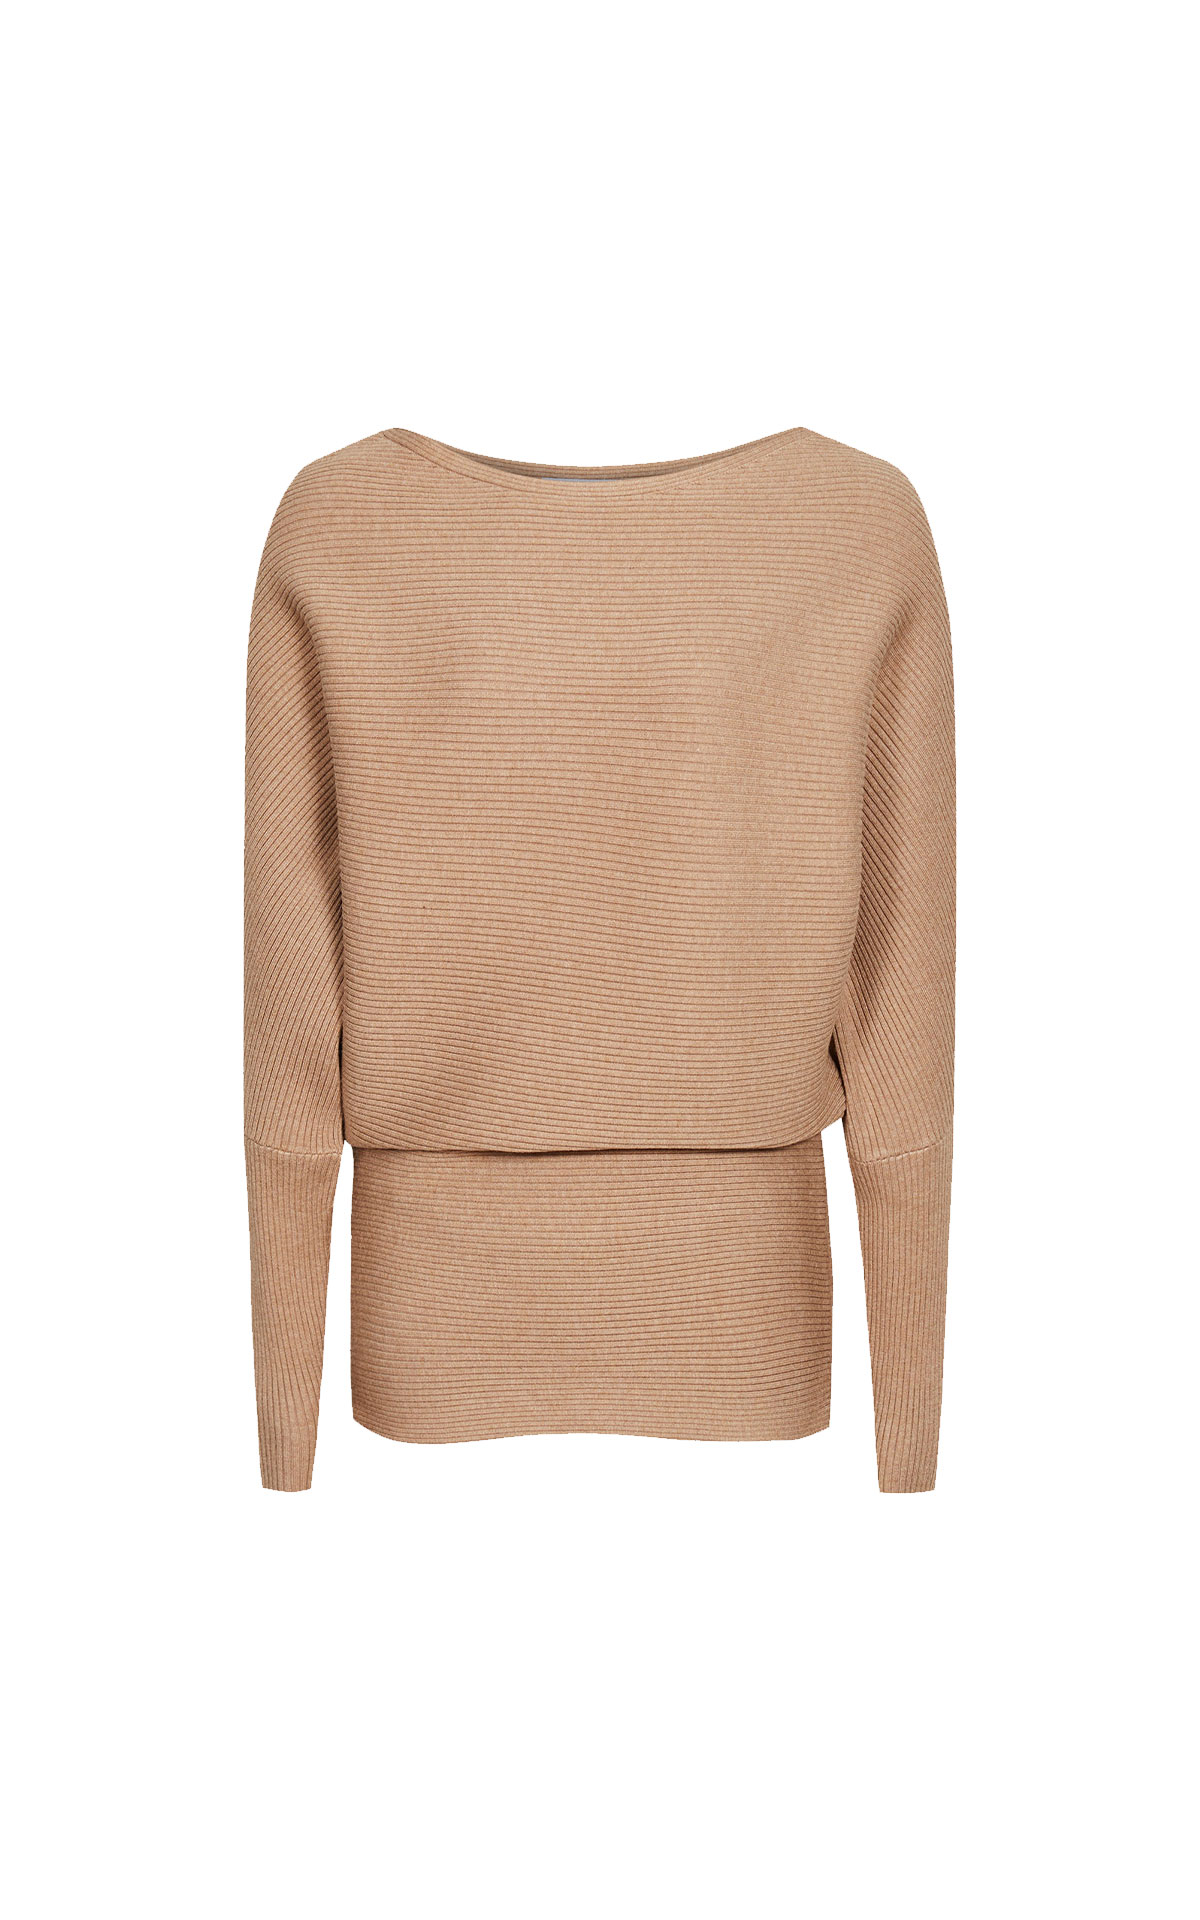 Reiss Lorena camel top from Bicester Village